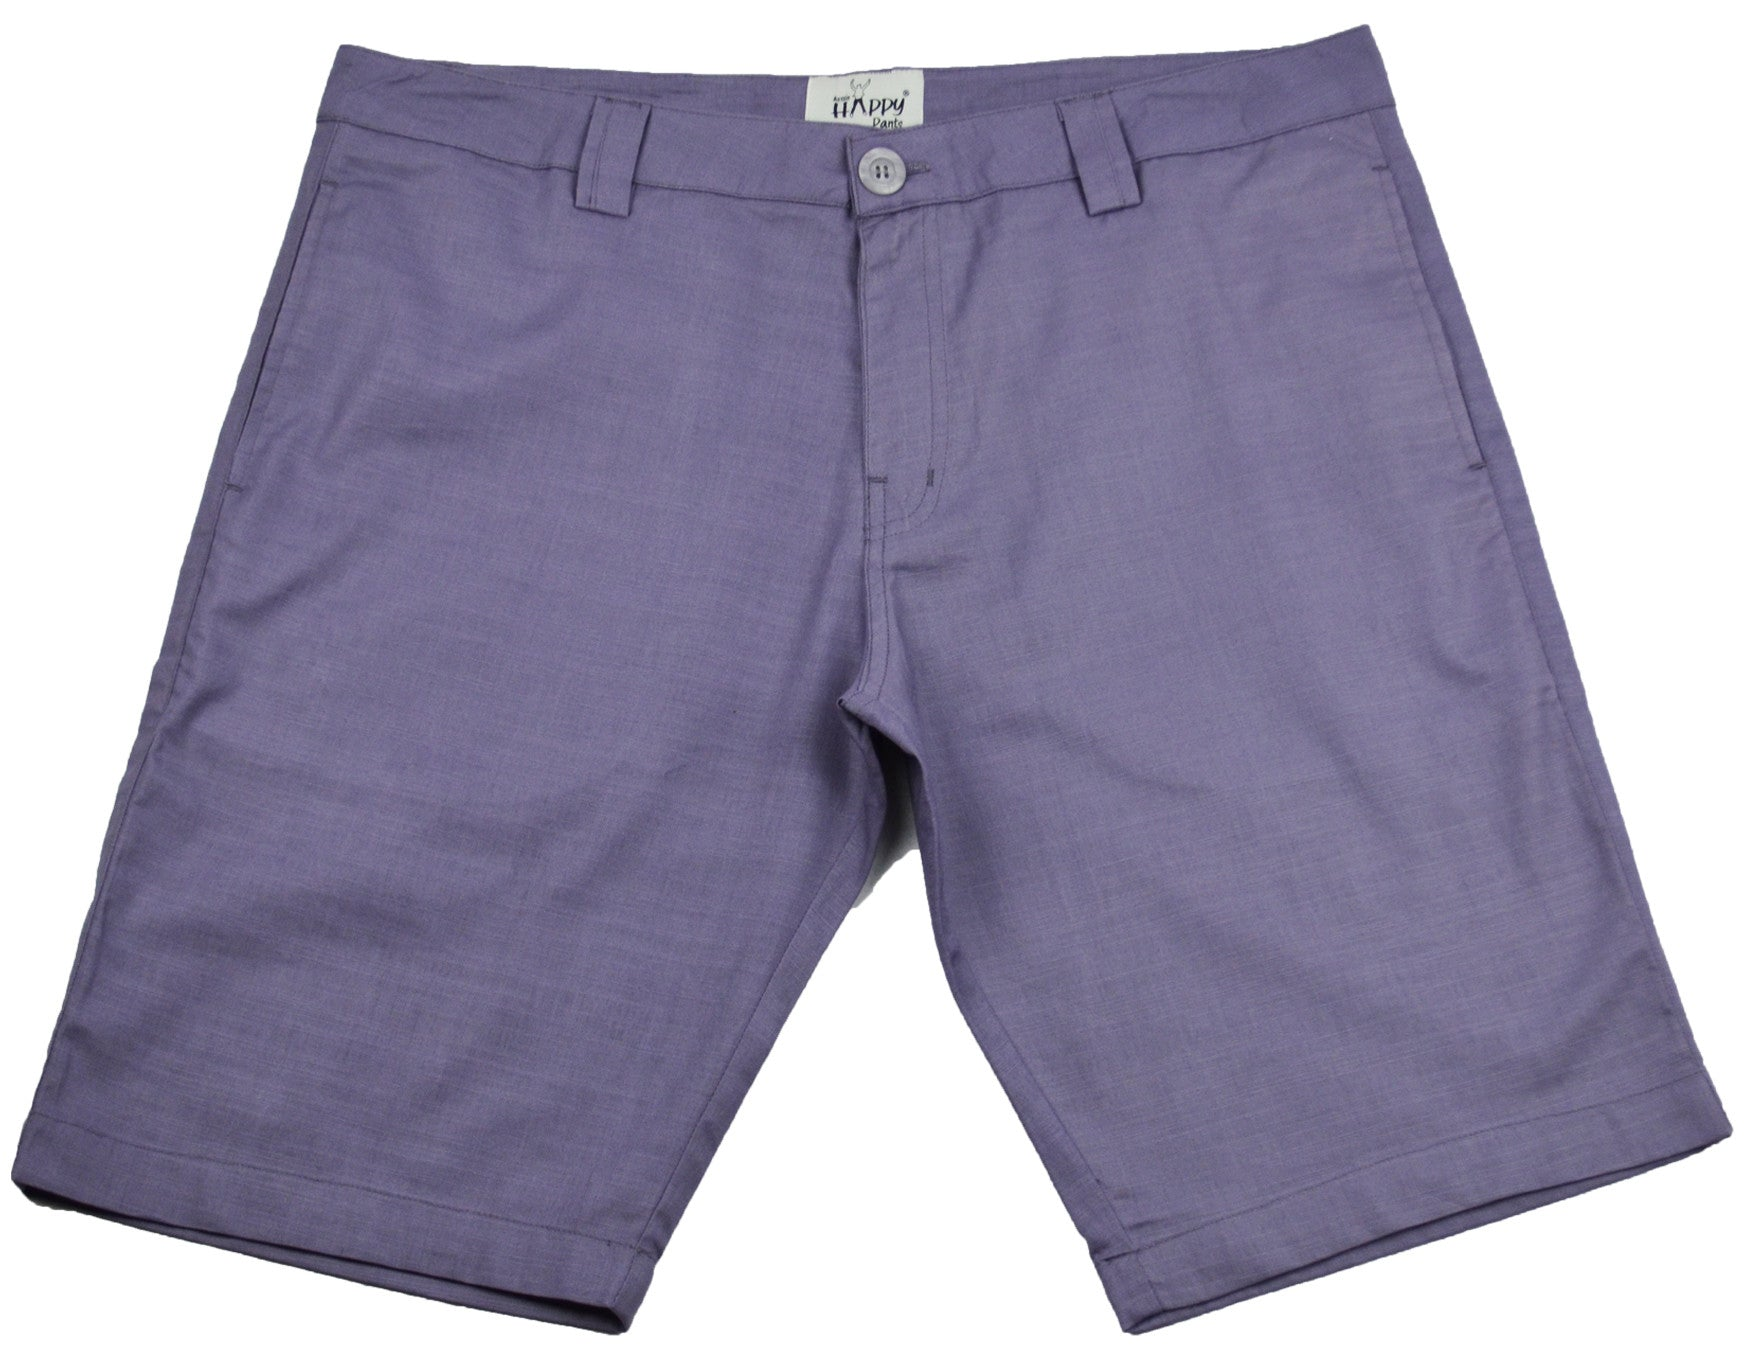 Purple/Gray Cotton Shorts - Happy Pants - 1